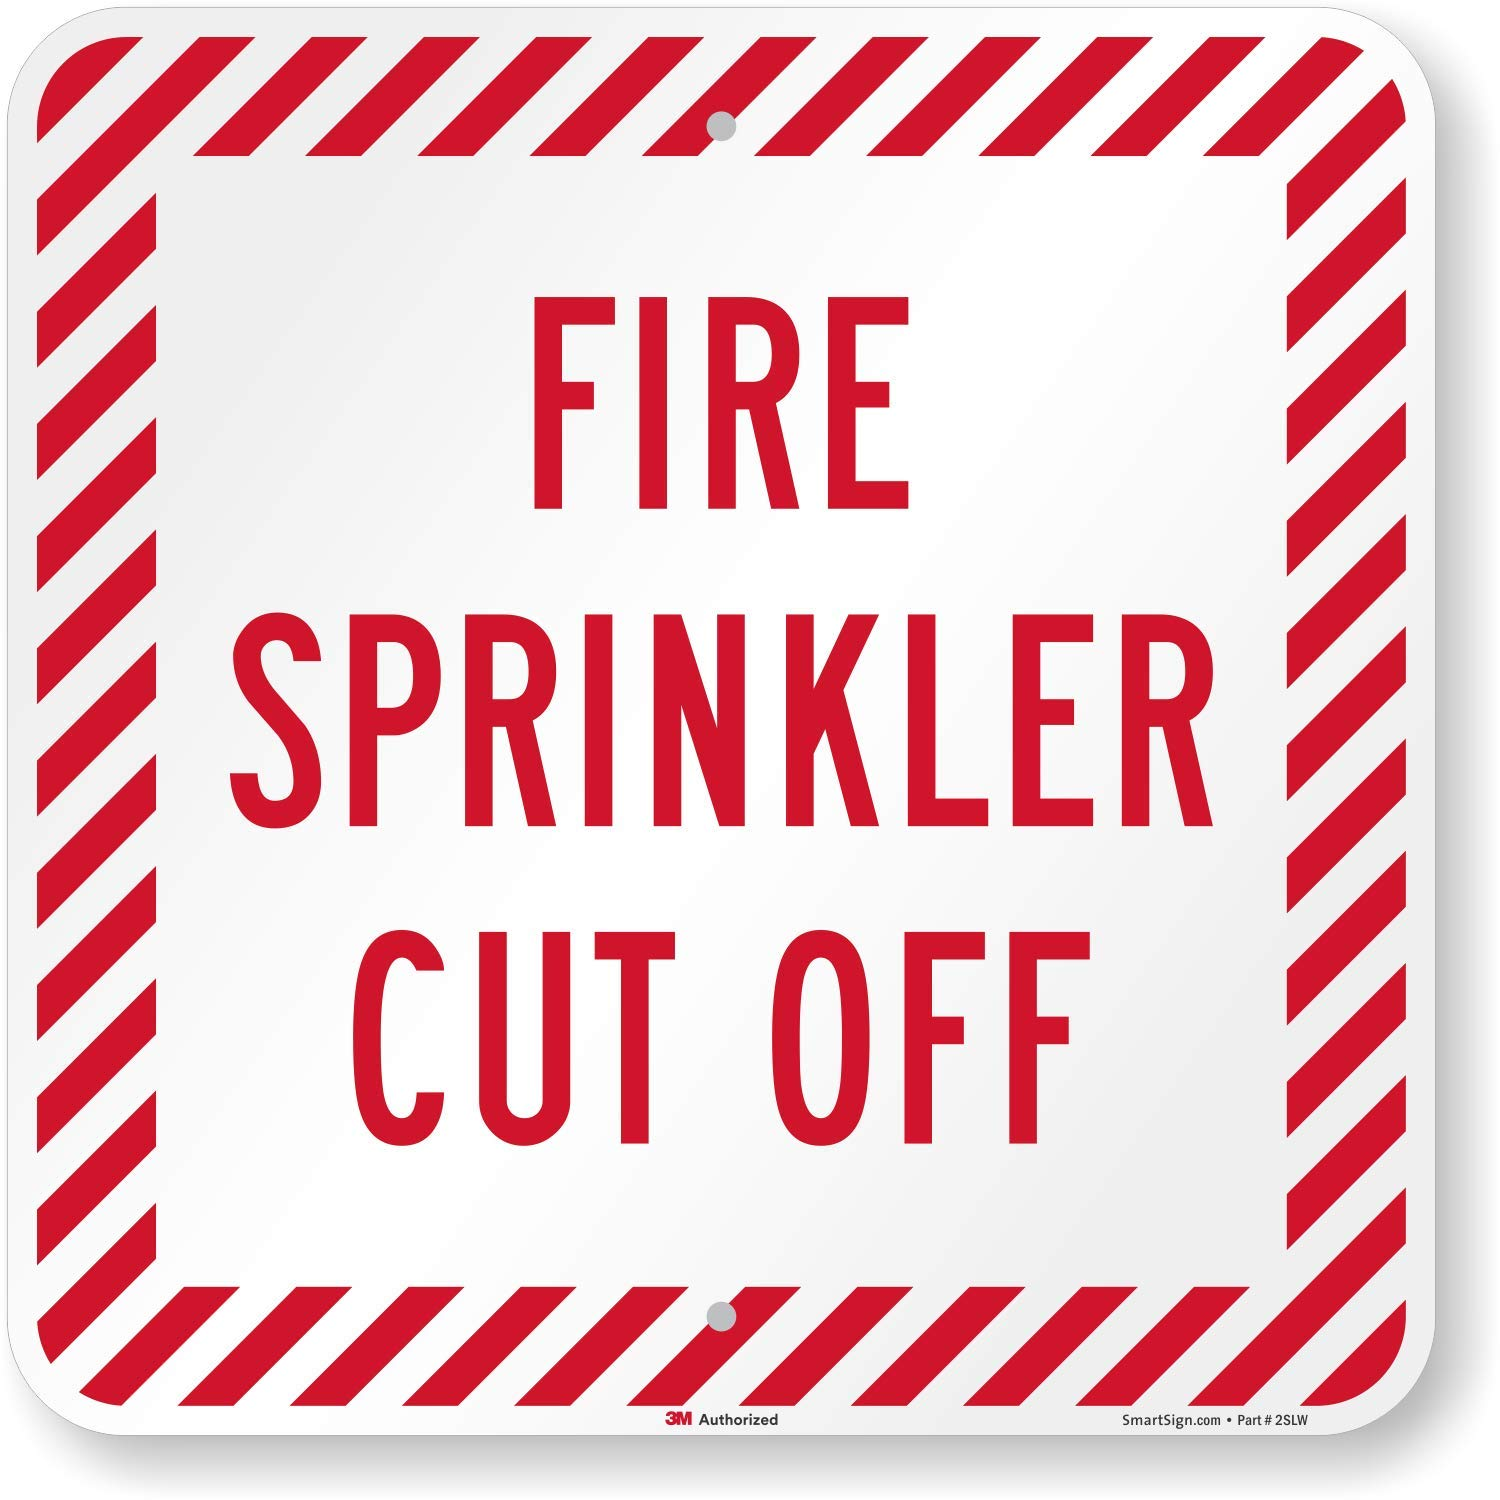 Fire Sprinkler Cut Off Sign By SmartSign 18 x 18 3M High Intensity Grade Reflective Aluminum